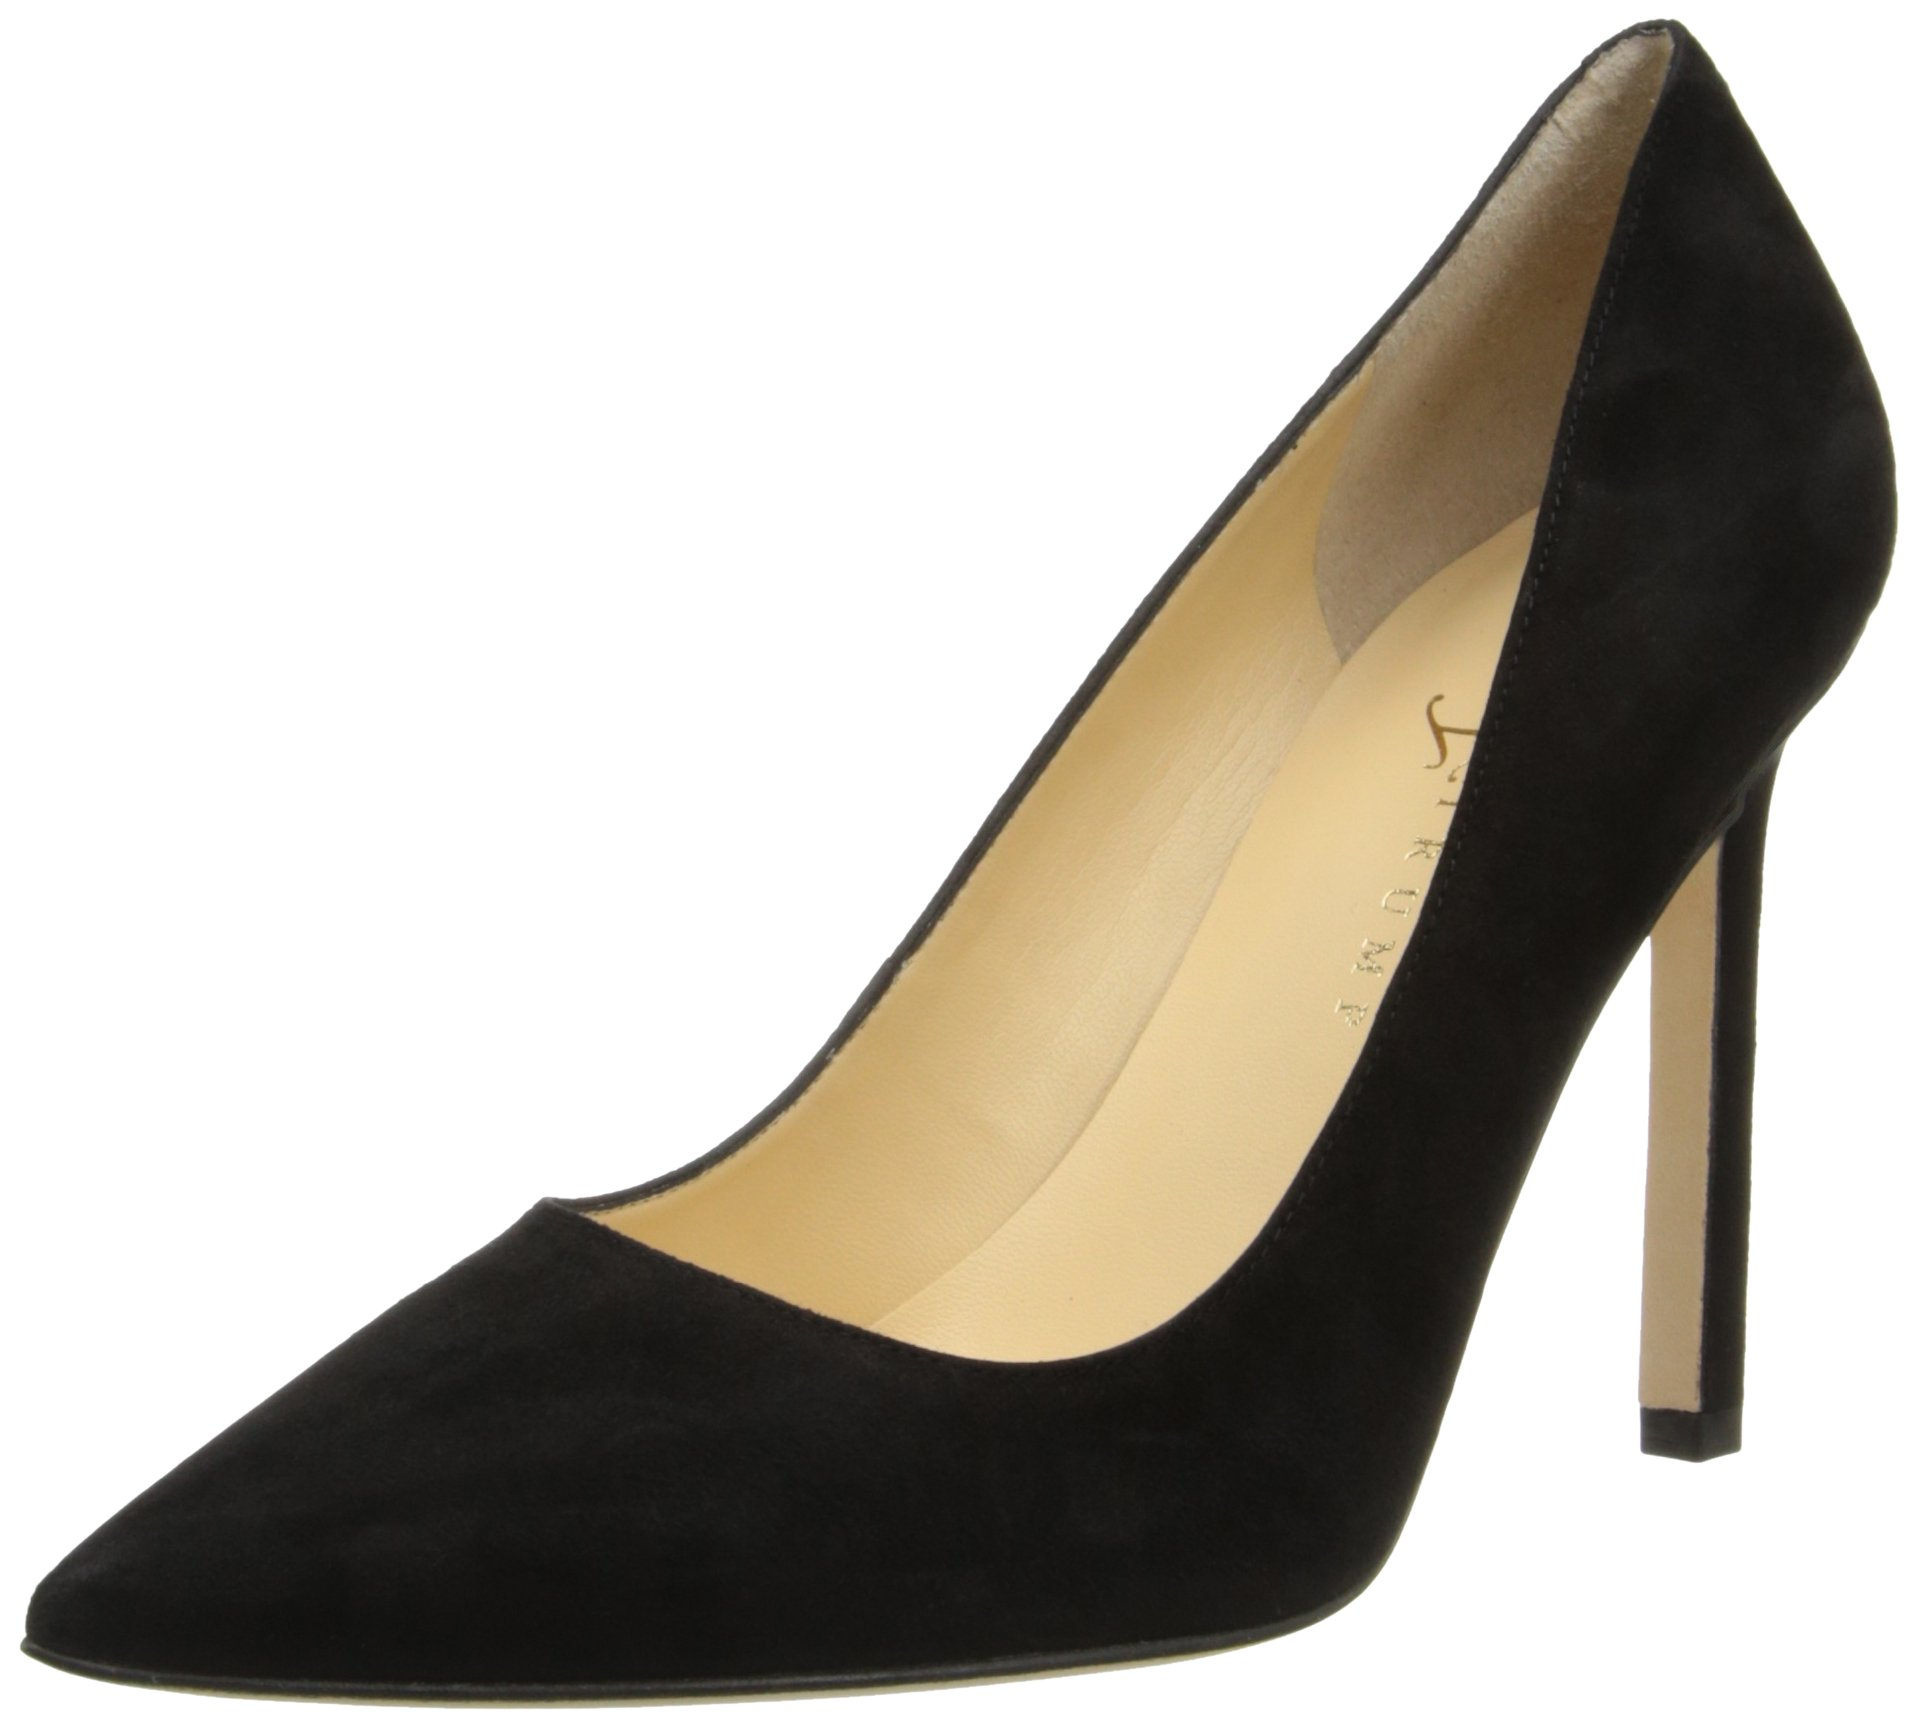 Ivanka Trump Women's Carra Dress Pump, Black Suede, 7 M US